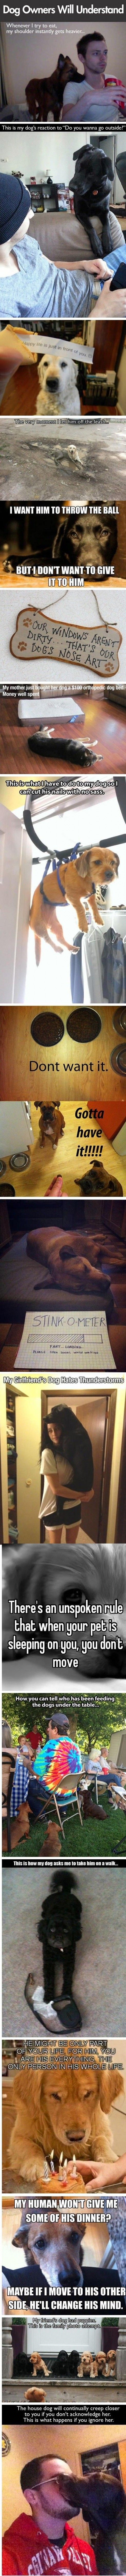 Dog Owners Will Understand (Compilation), Click the link to view today's funniest pictures!